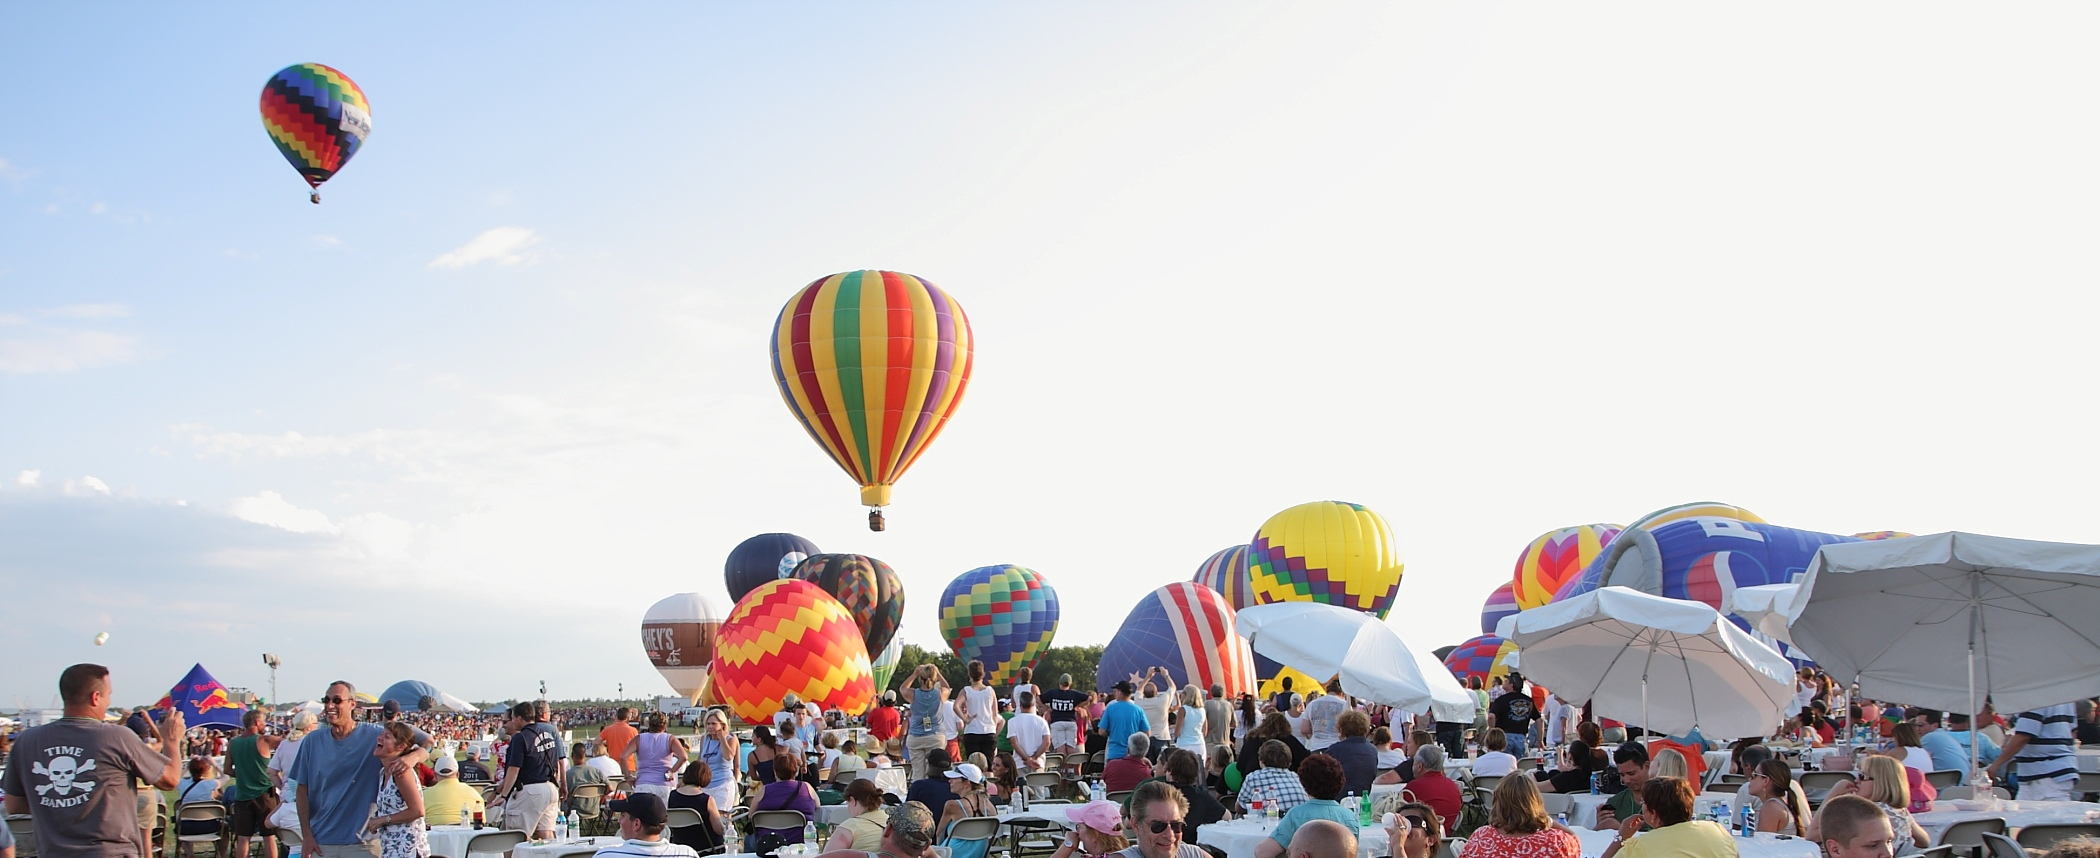 Balloon Festival 2020 Nj.The 38th Annual New Jersey Festival Of Ballooning Corporate